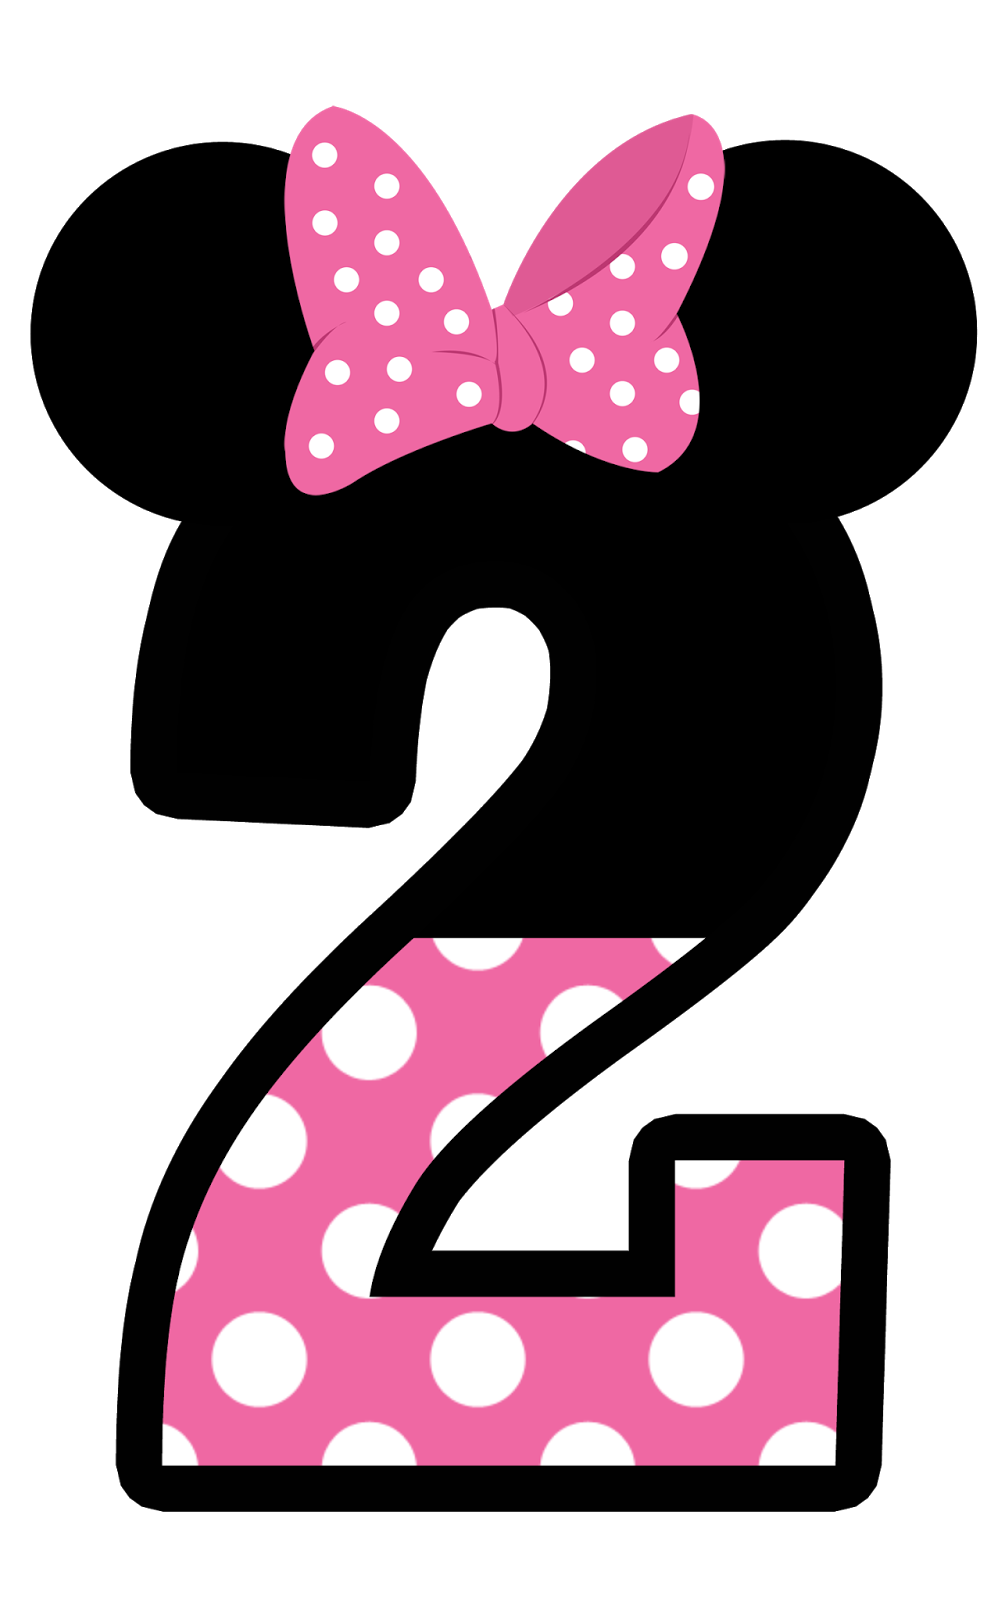 Pink number 2 birthday clipart black and white Number 2 Clipart | Free download best Number 2 Clipart on ... black and white